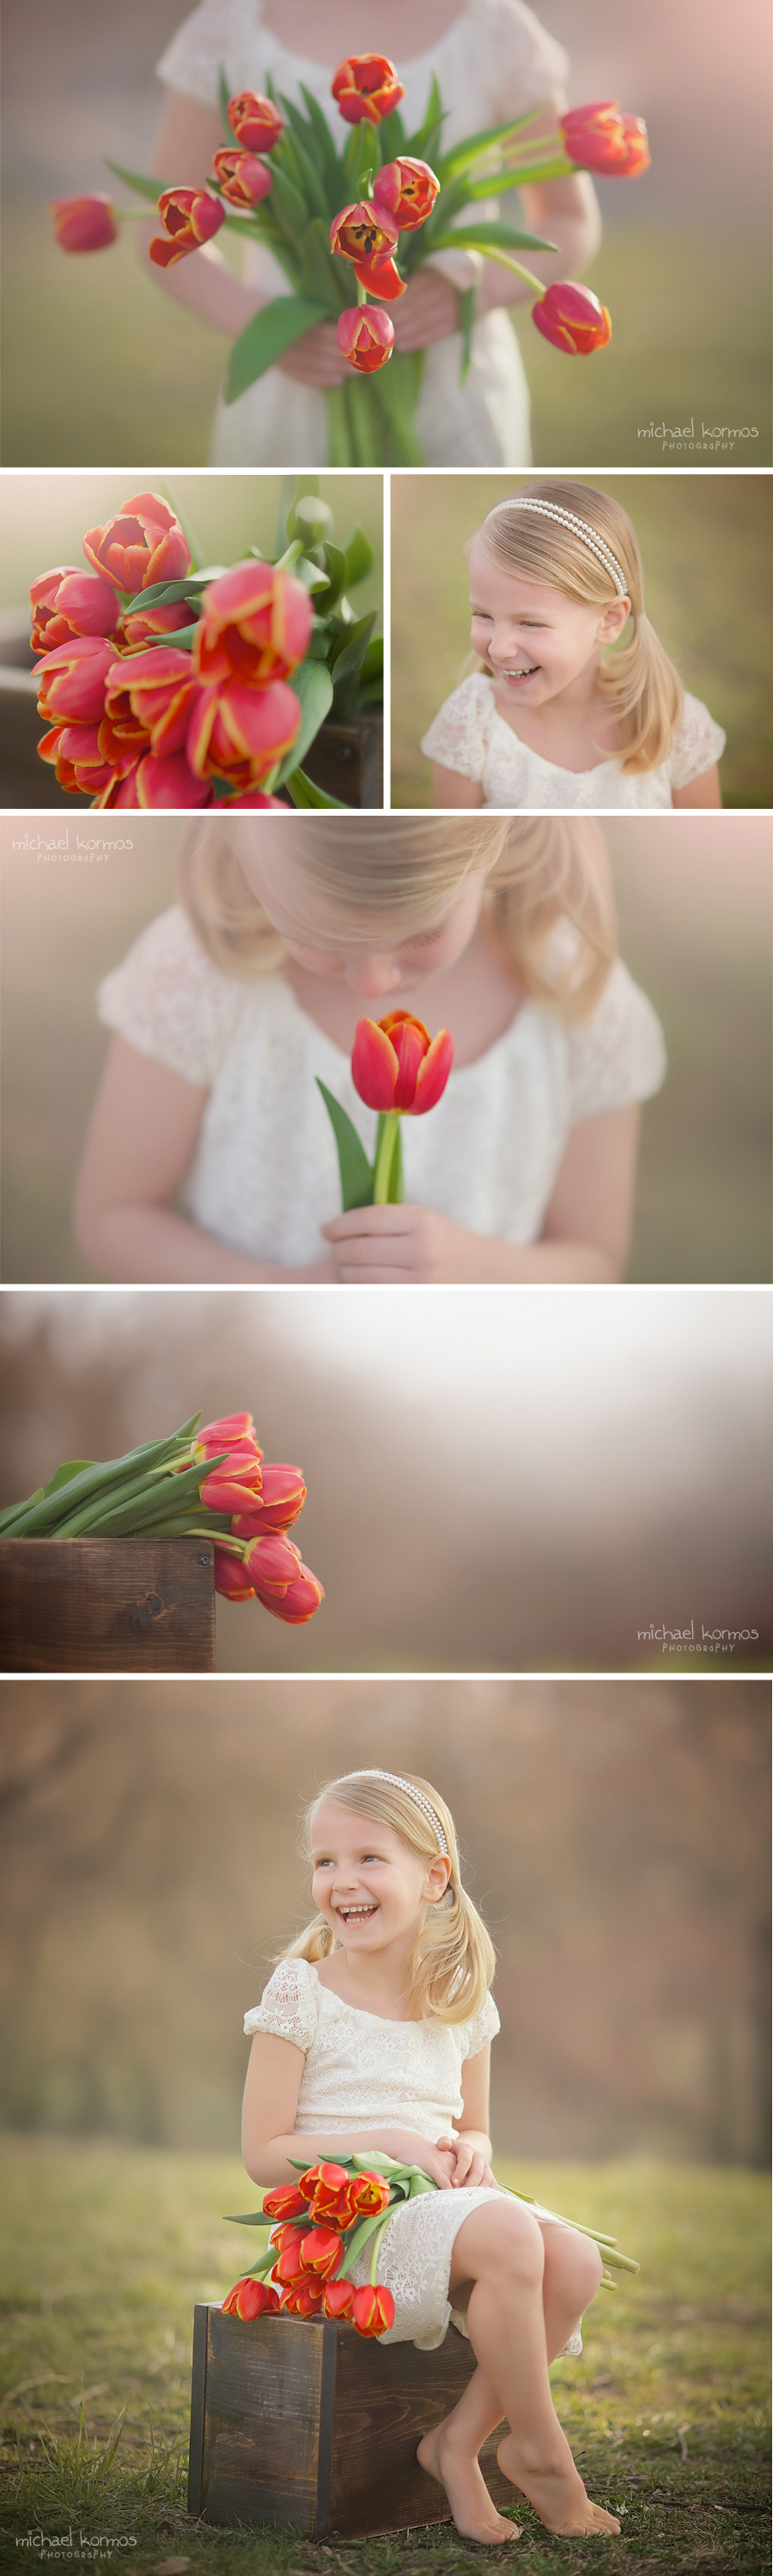 Blonde girl with orange tulips in Springtime photographed by Michael Kormos